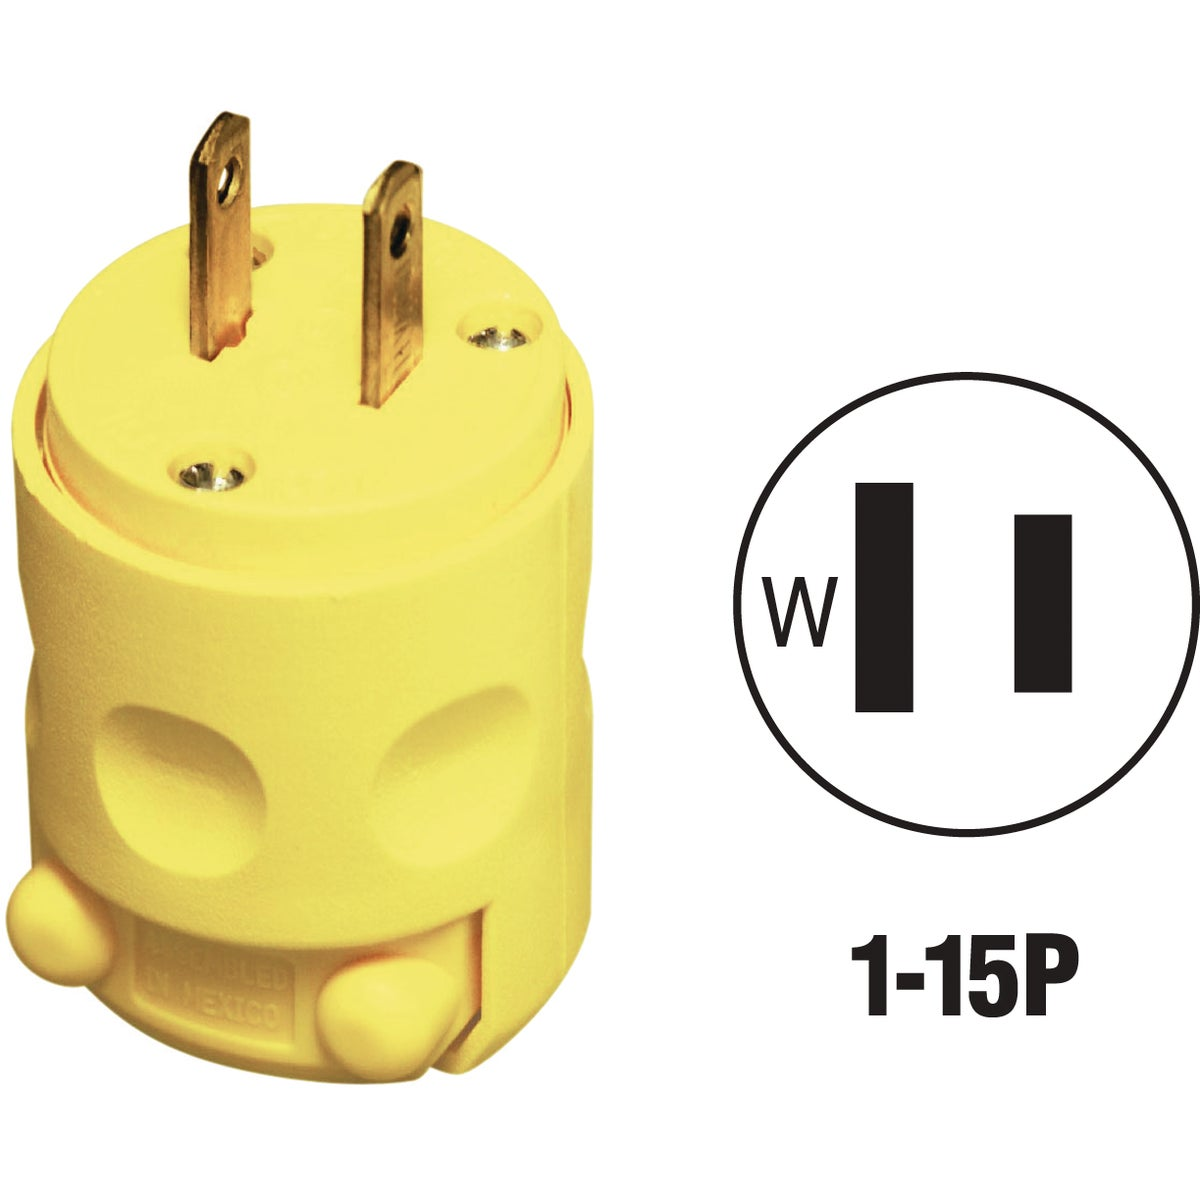 YEL CORD PLUG - 115PV by Leviton Mfg Co